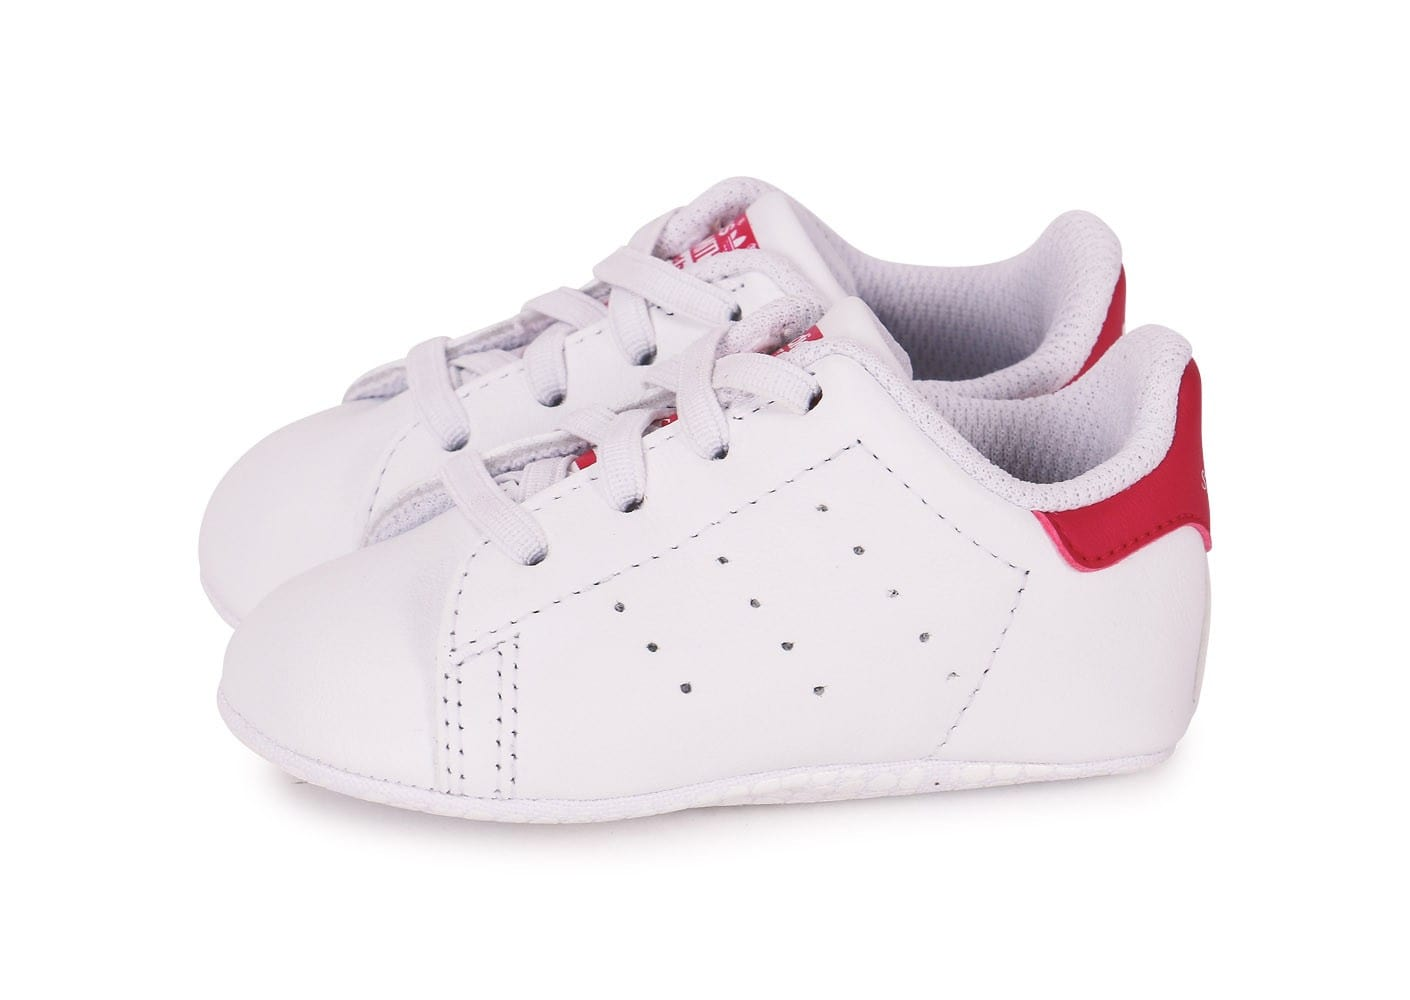 adidas stan smith b b blanc rose chaussures adidas chausport. Black Bedroom Furniture Sets. Home Design Ideas